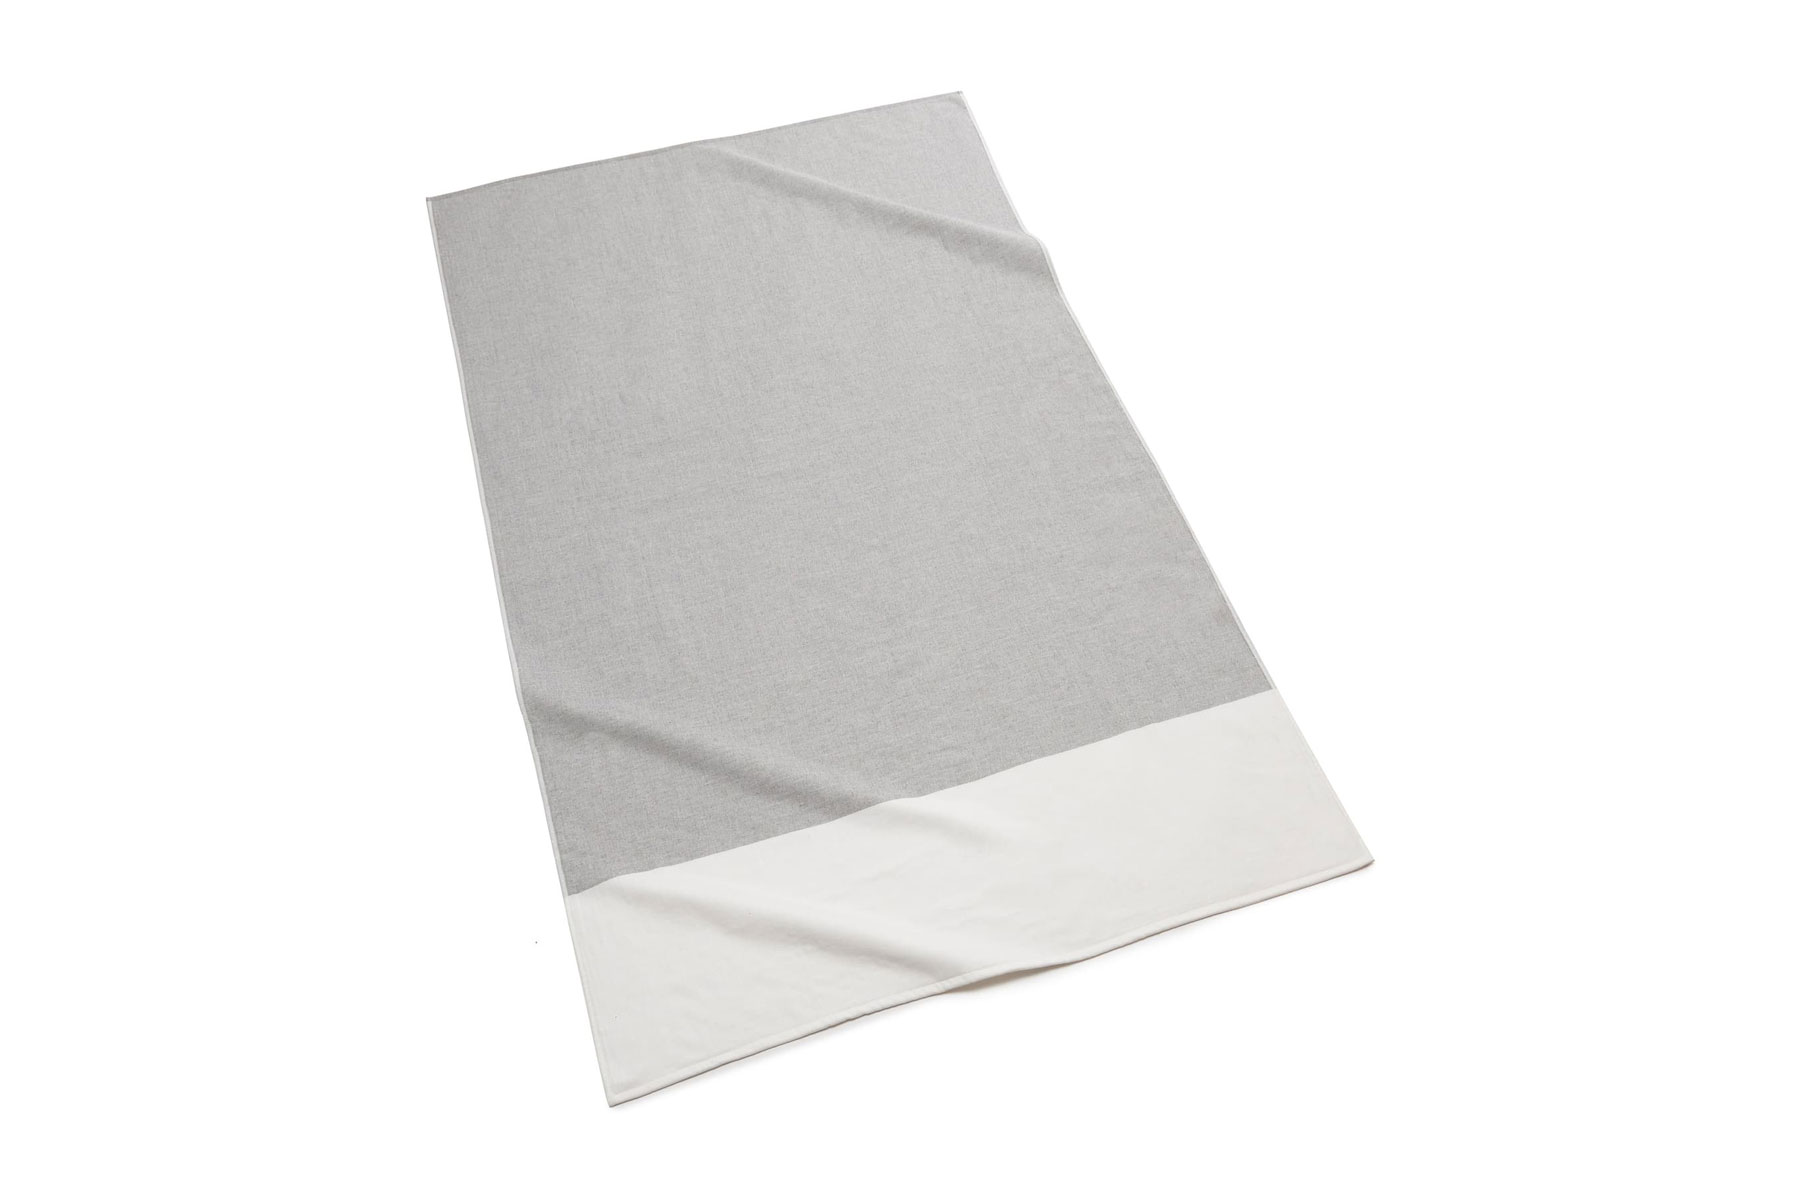 This color blocked beach towel is impressively lightweight, which allows it to double as a chic pareo for beachgoers on the go.To buy: nordstrom.com, $50